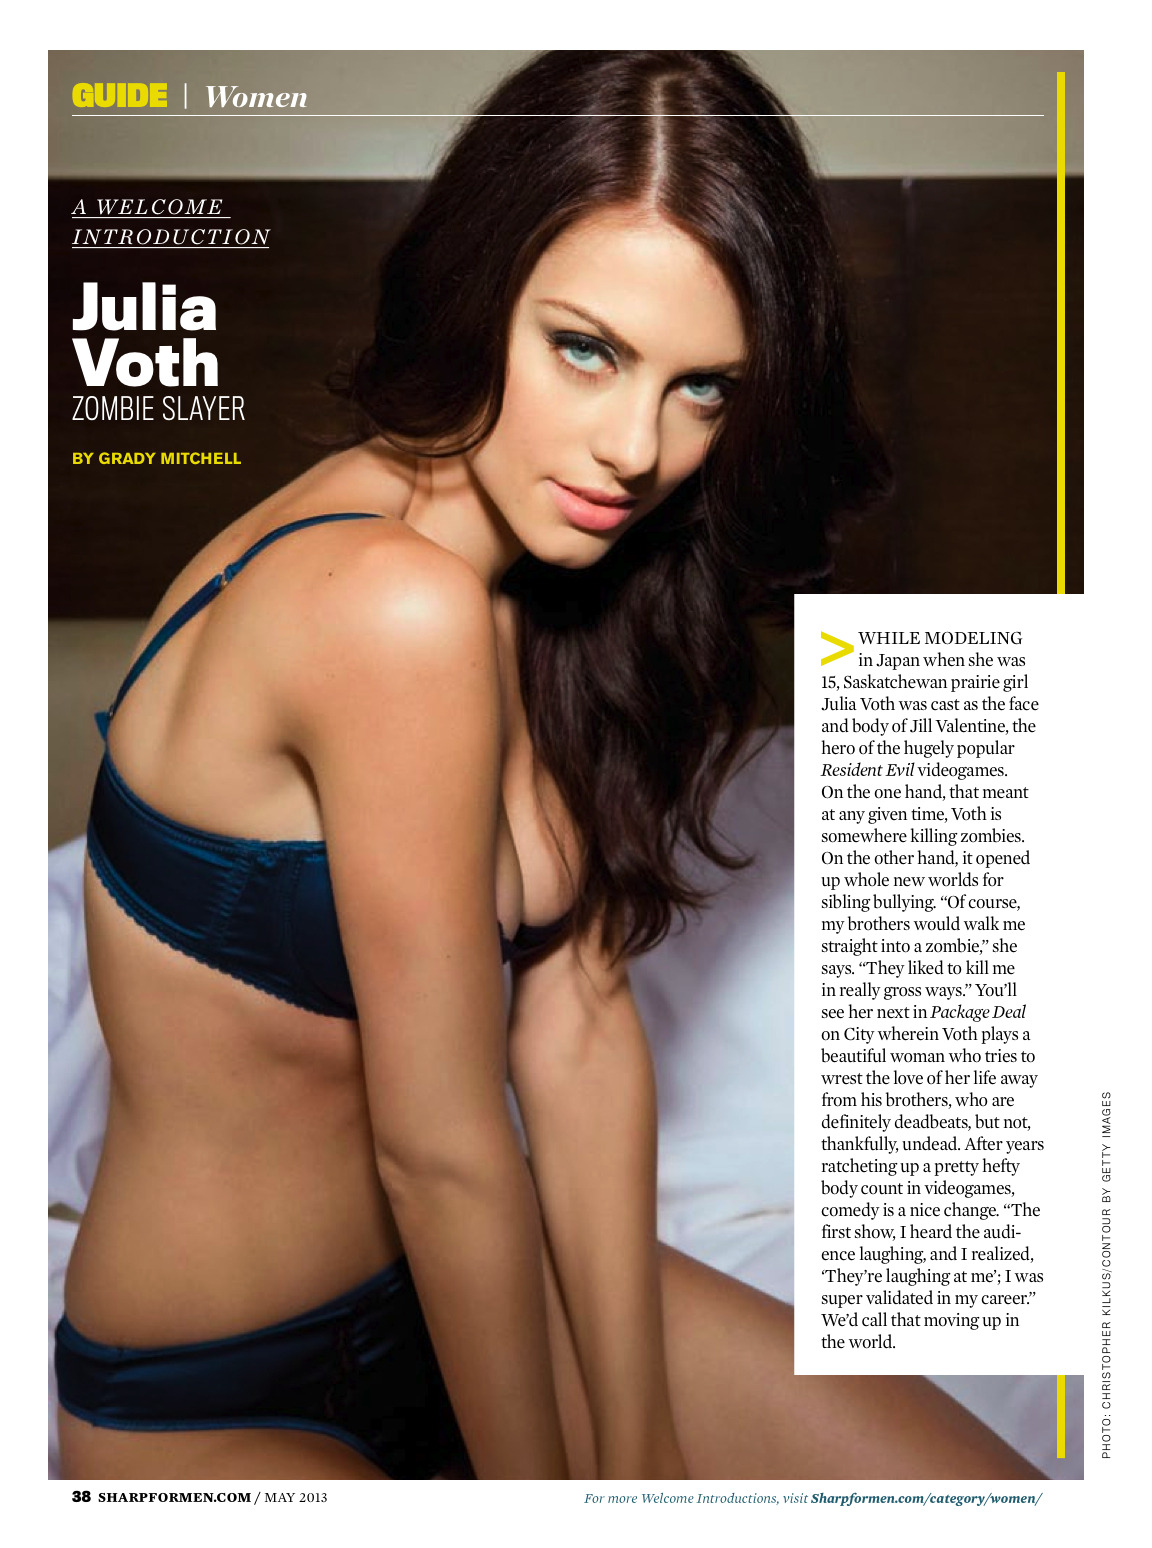 Julia Voth - Sharp Magazine Canada May 2013   |   Package Deal